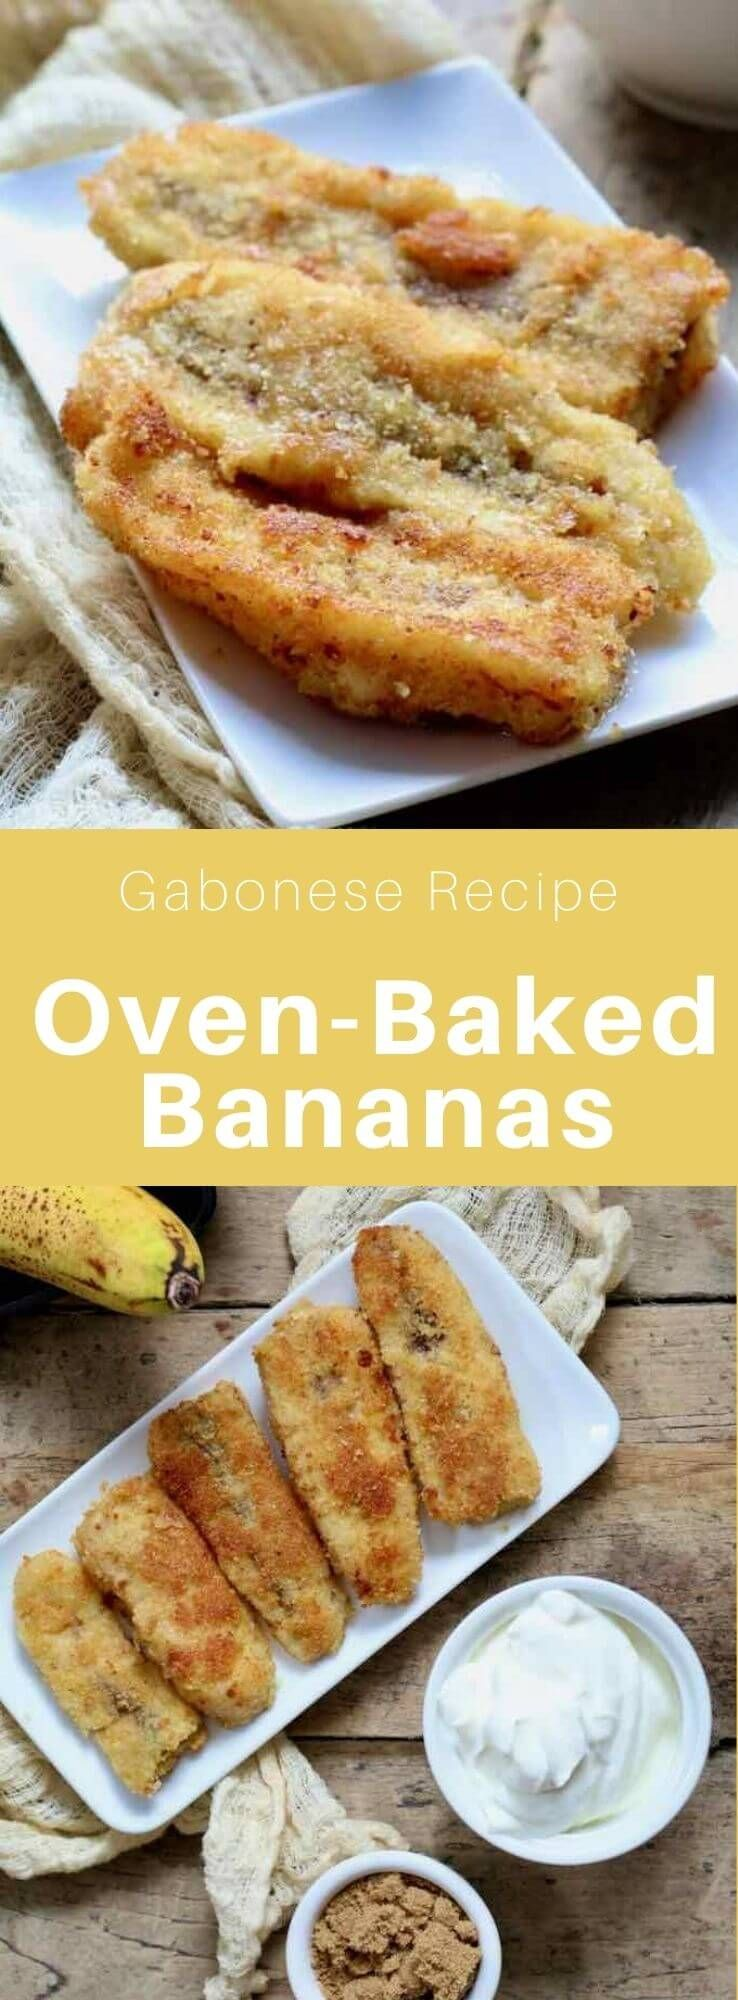 Oven Baked Bananas Are A Traditional Gabonese Dessert Consisting Of Fried Slices Of Breaded Banana Which Are Then Baked In The Oven B Baked Banana Recipes Food